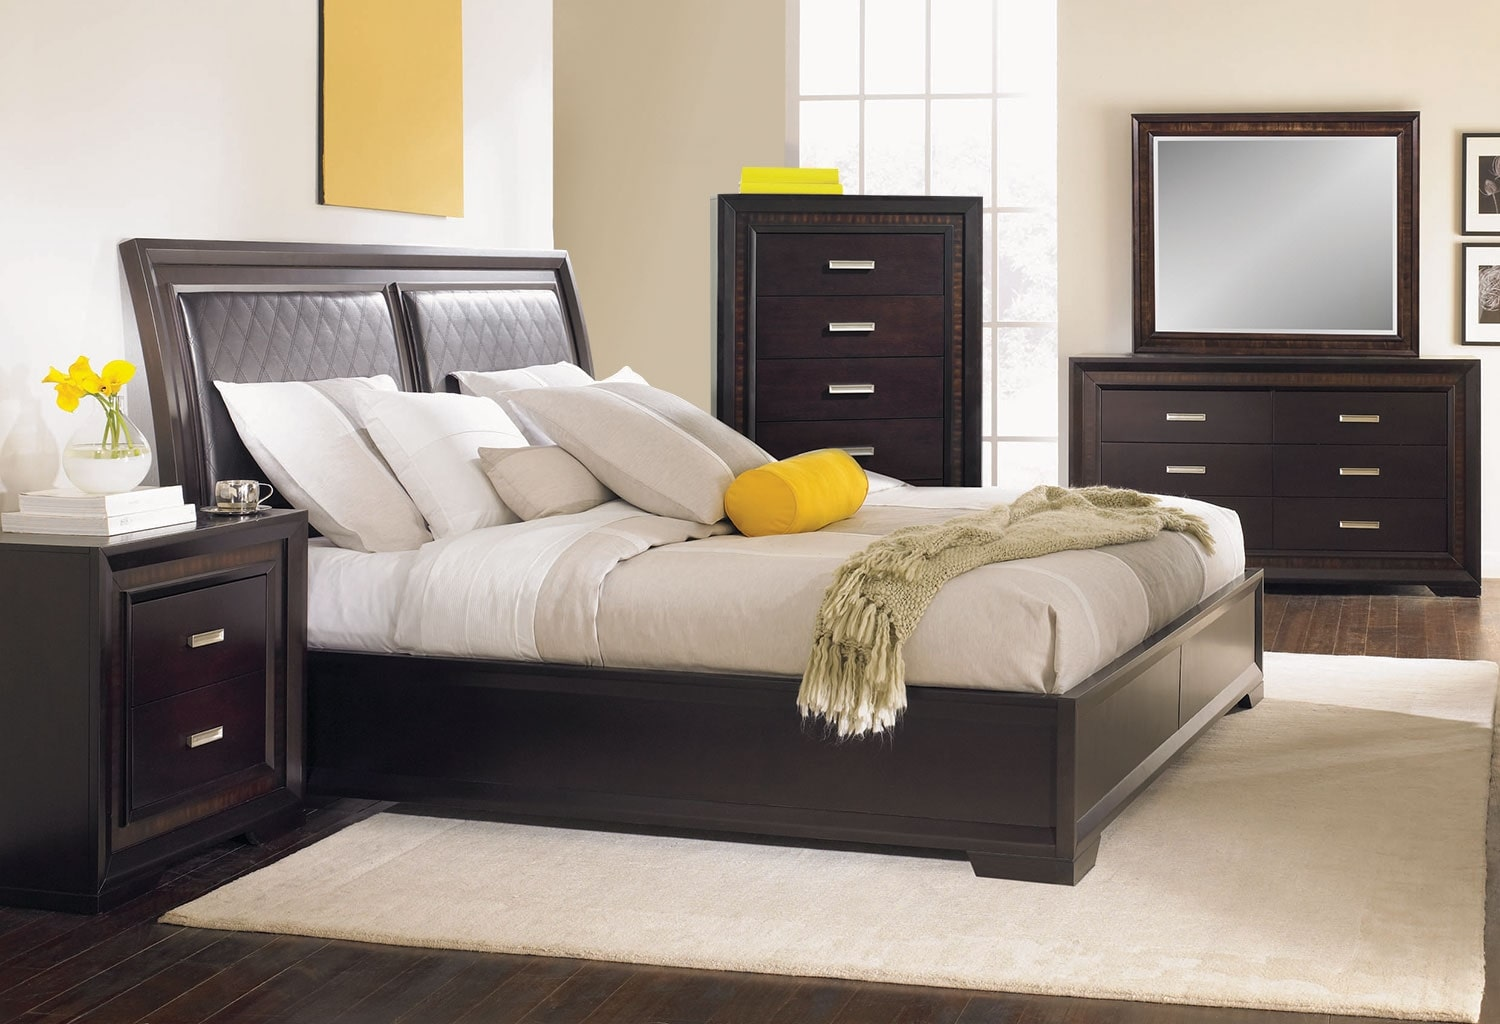 Bedroom Furniture - Brentwood 8-Piece Queen Bedroom Package